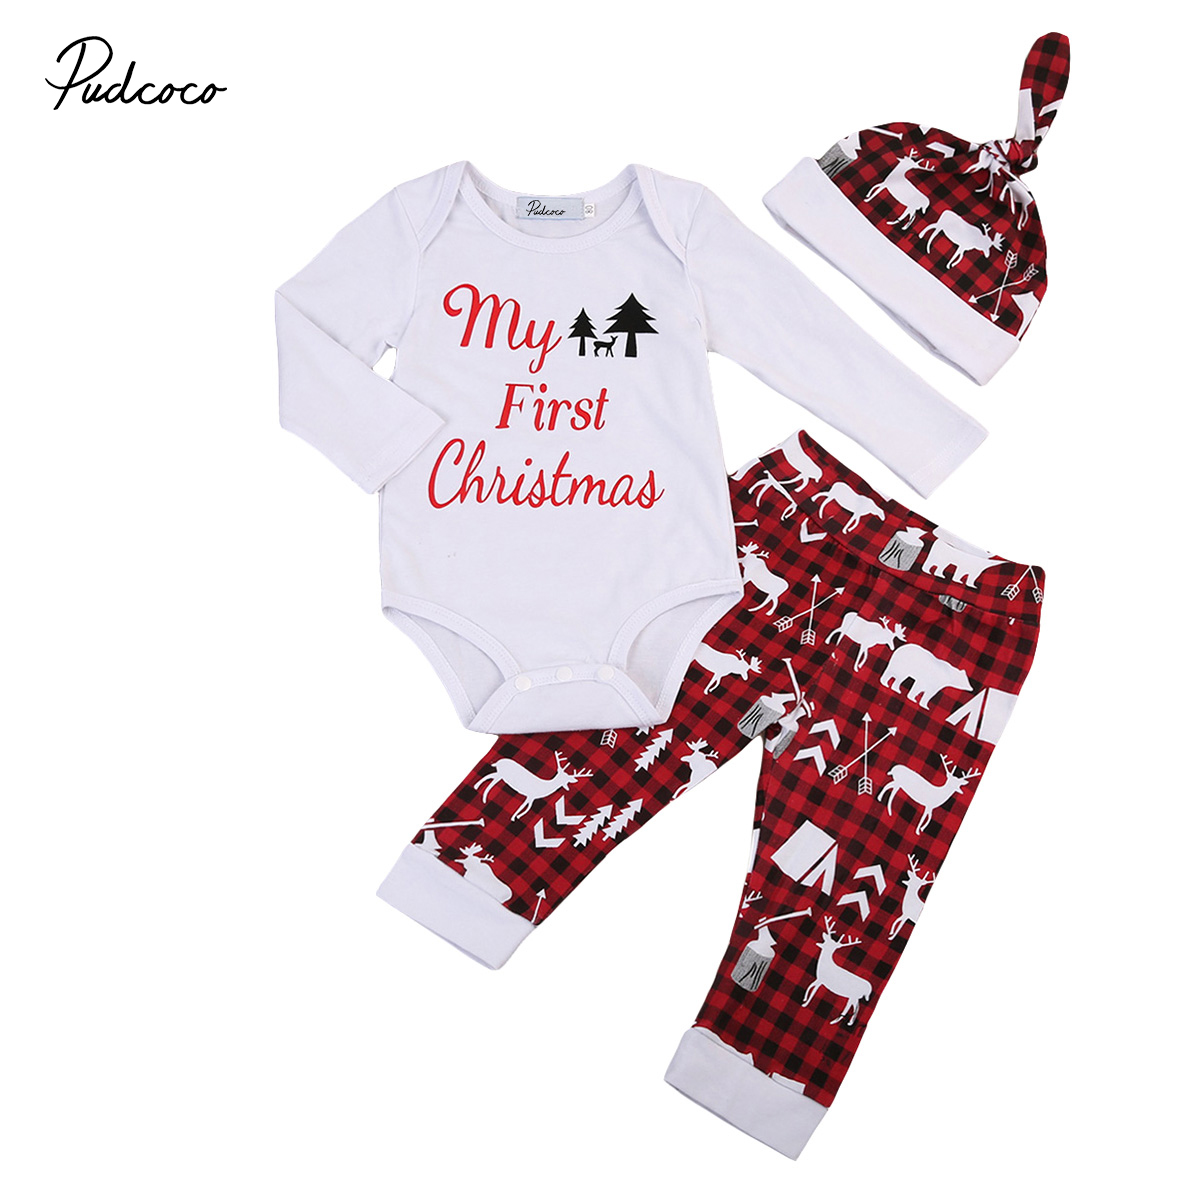 3pcs Xmas set Newborn Baby Girls Boys My First Christmas long sleeve Tops Romper+Deer Long Pants Hat Outfits my first christmas newborn baby girl long sleeve cotton romper tops snowman print bowknot skirt headband 3pcs xmas clothes set